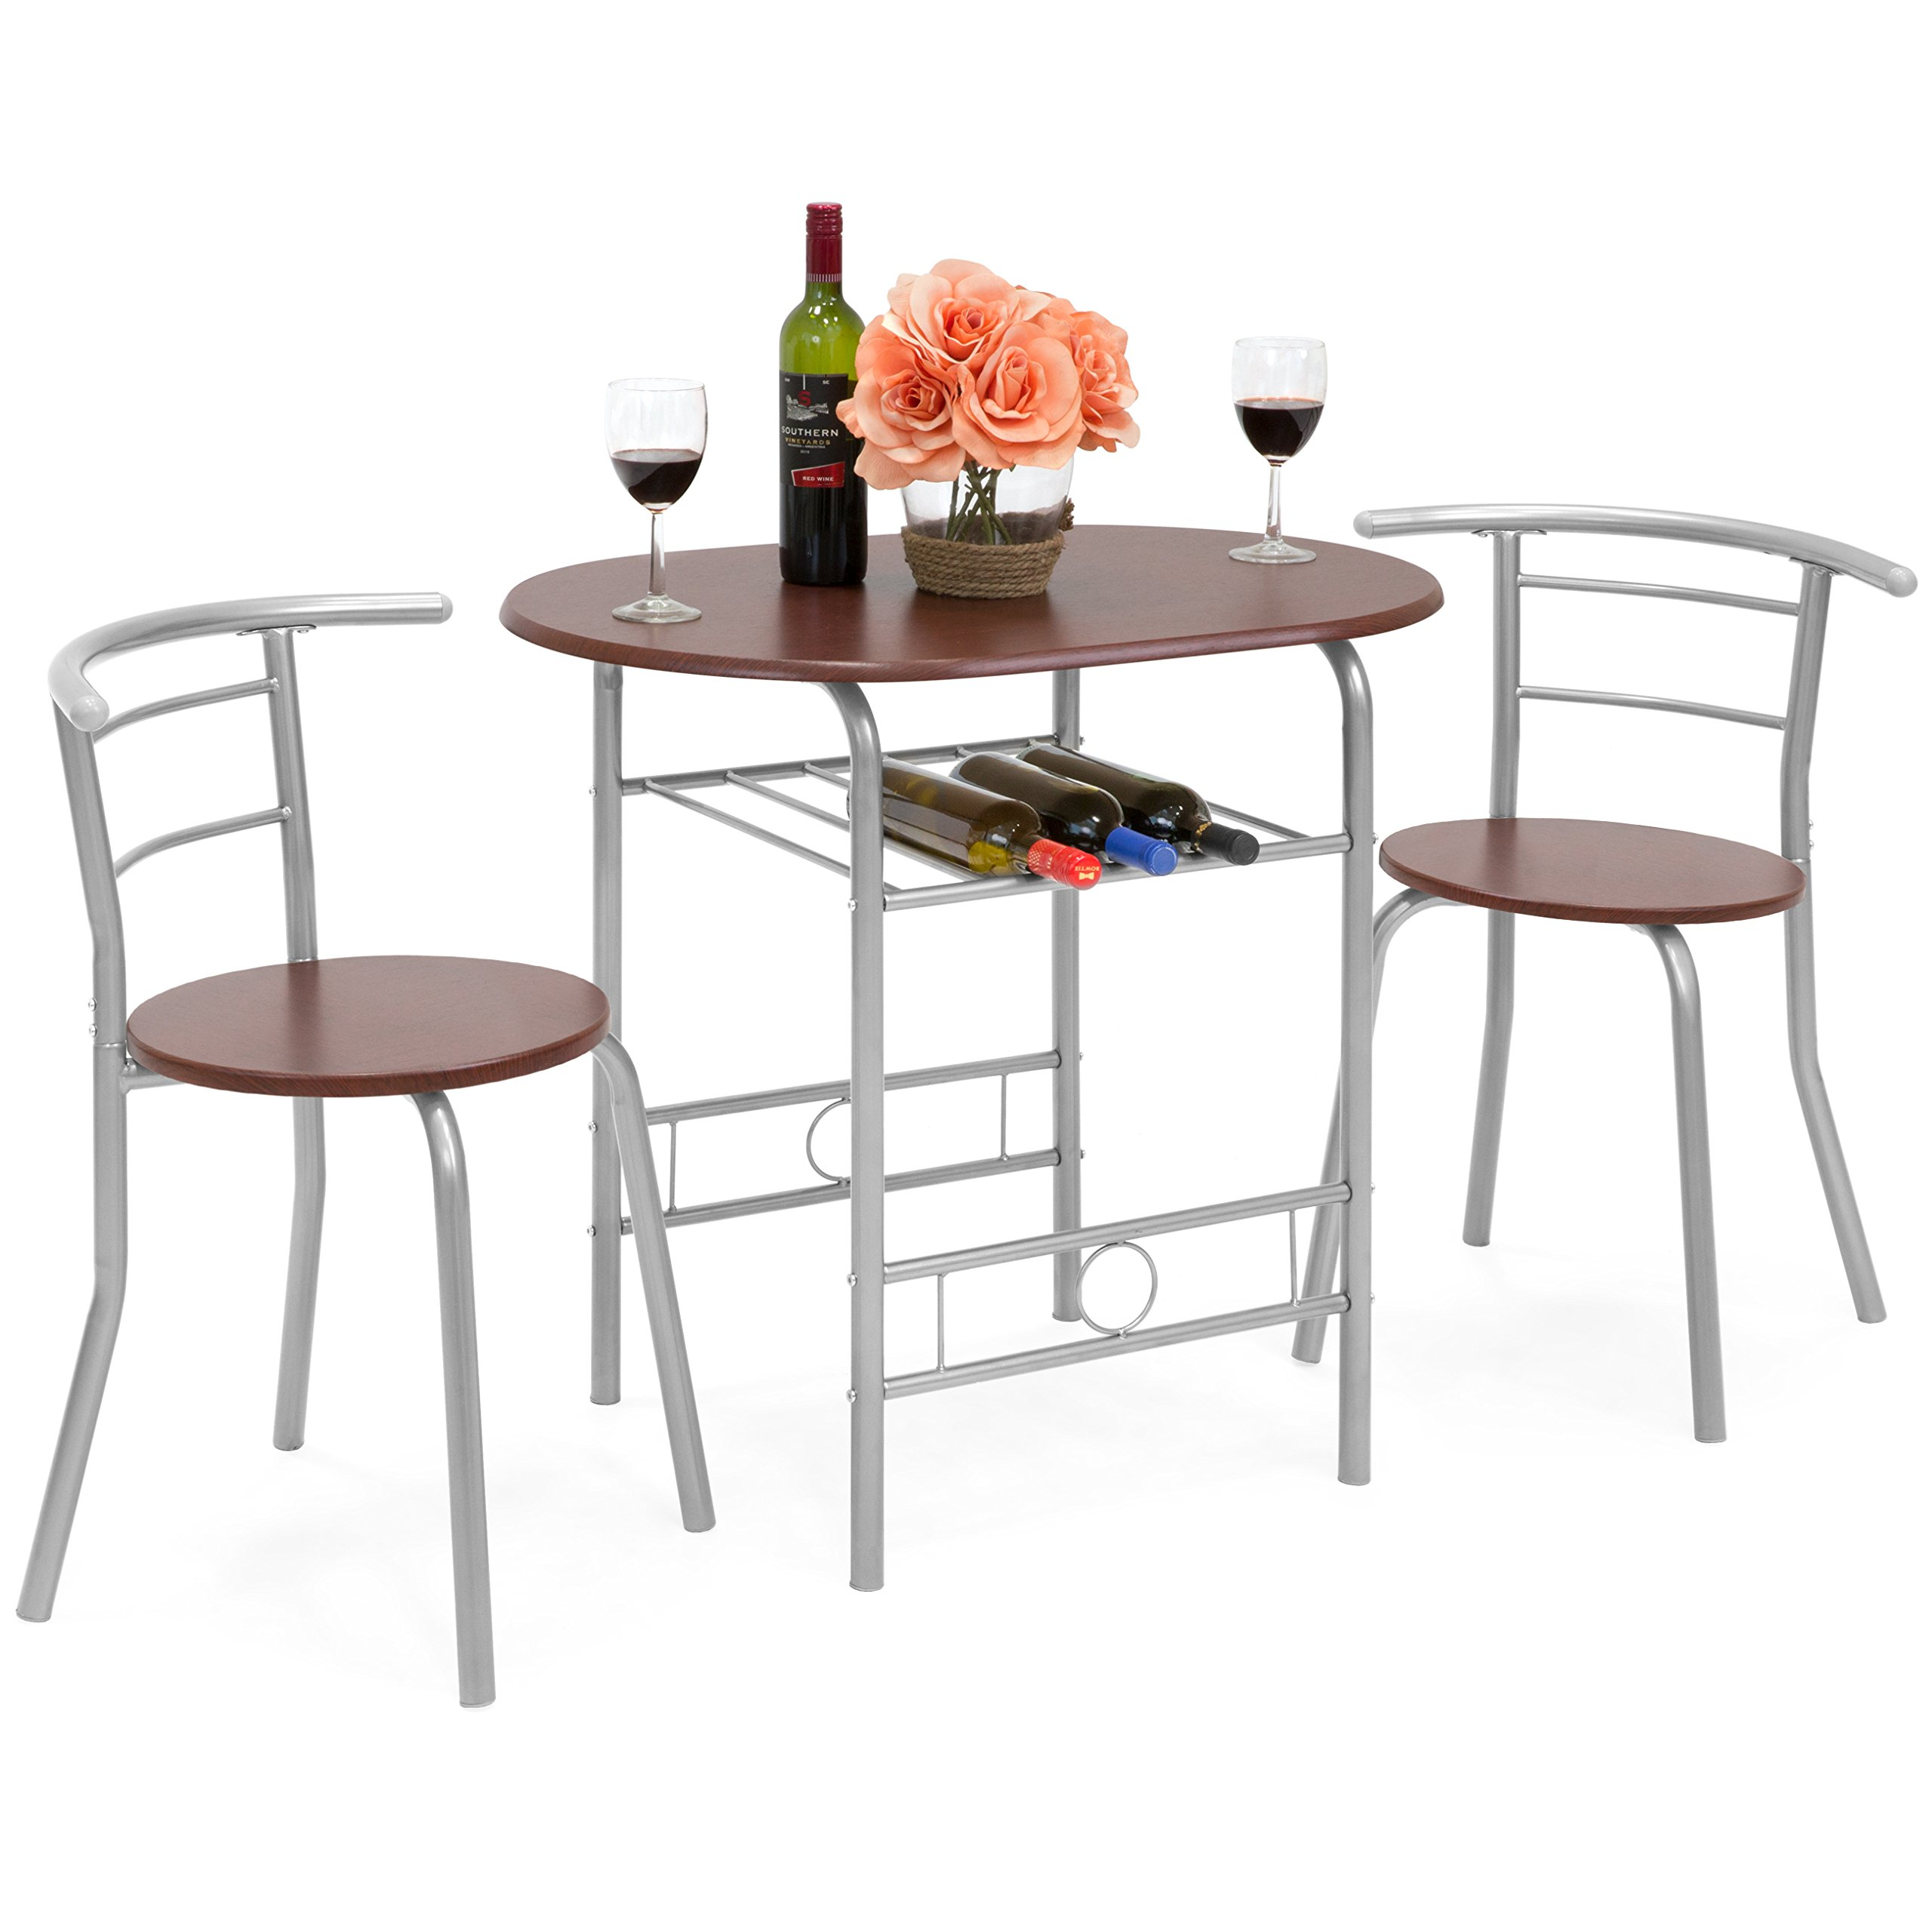 Best Choice Products 3-Piece Wooden Kitchen Dining Room Round Table and Chairs Set w/Built in Wine Rack (Espresso) by Best Choice Products (Image #1)